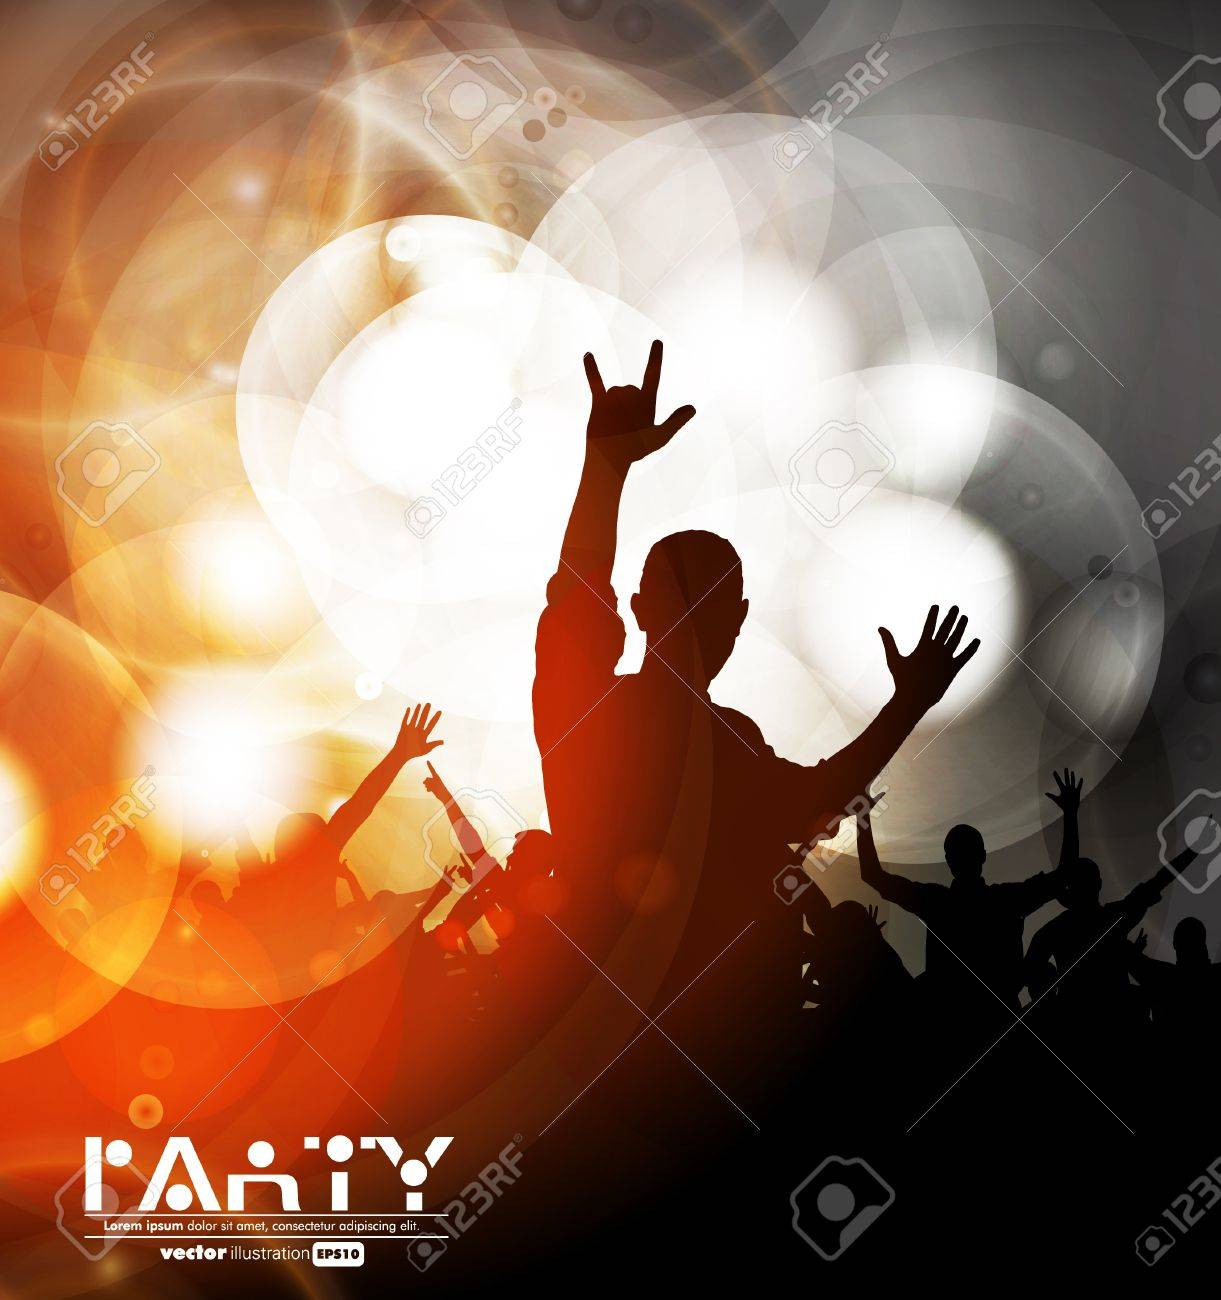 Colorful crowd of party people silhouettes background Stock Vector - 19354174